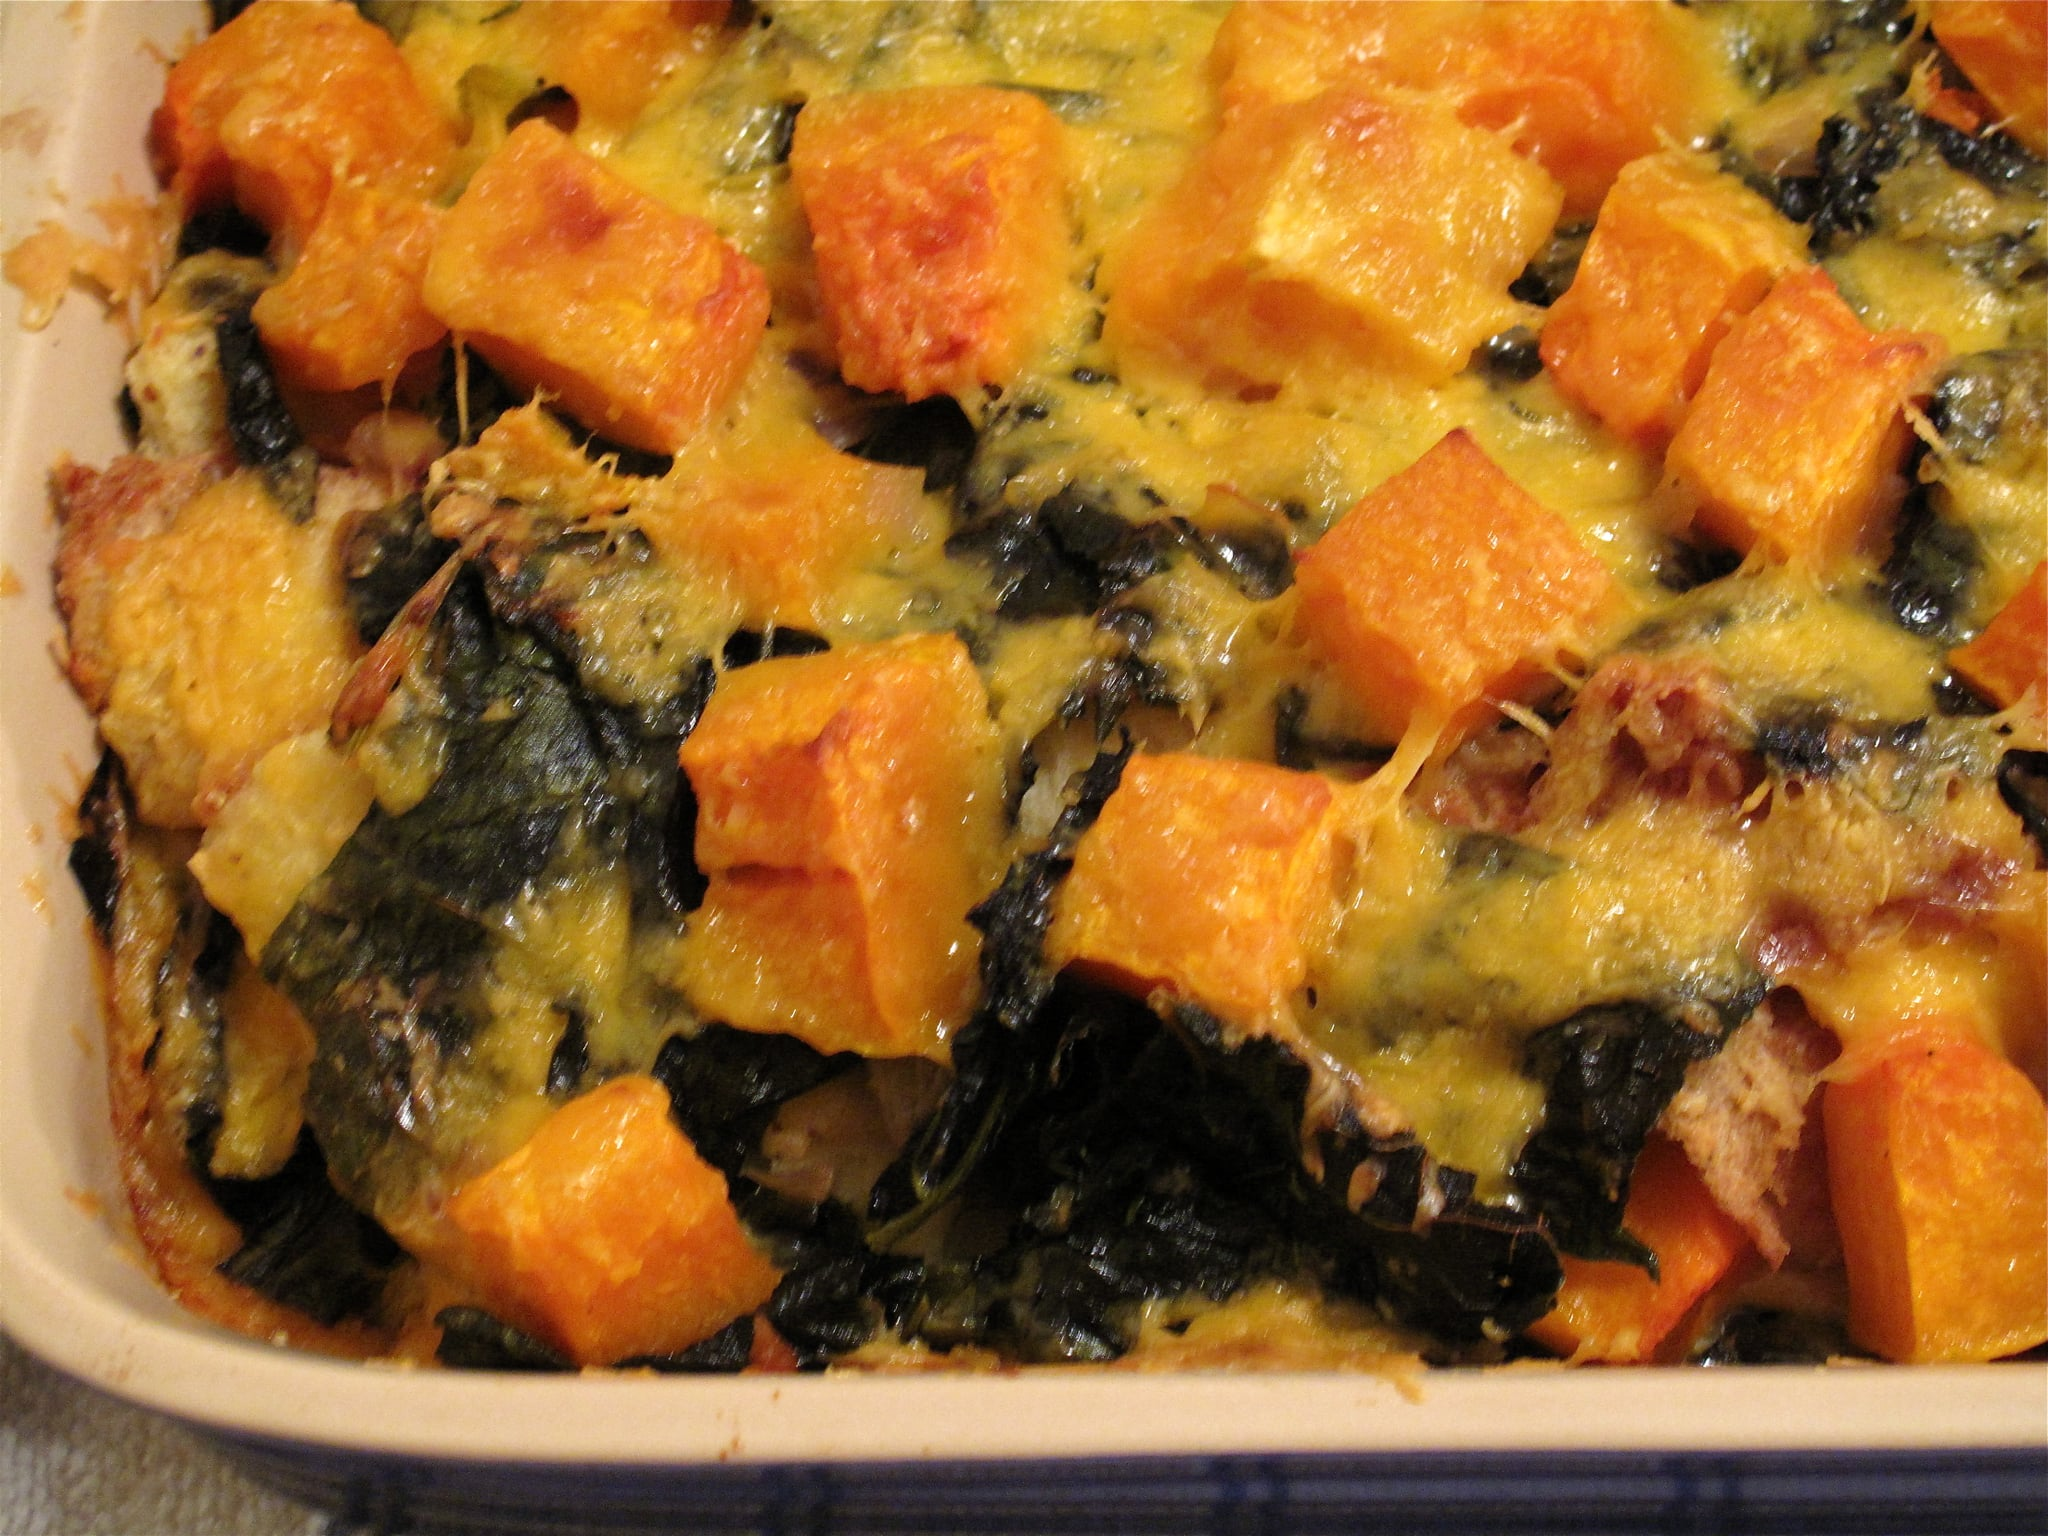 Photo Gallery: Butternut Squash and Cheddar Bread Pudding